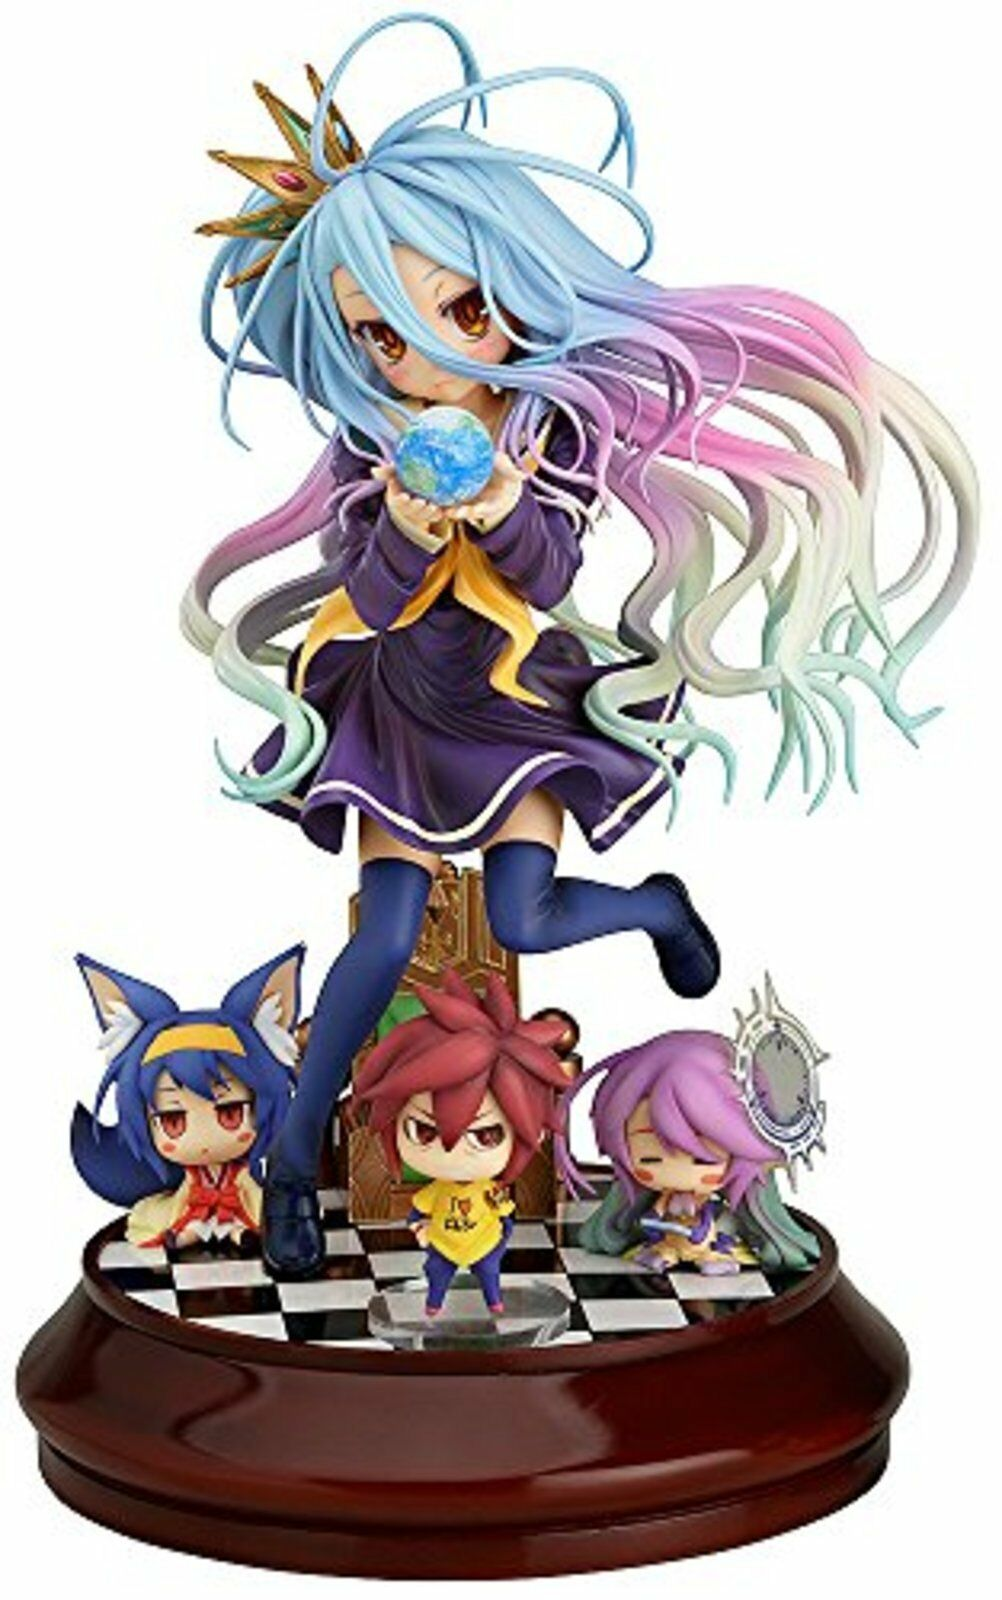 No Game No Life Weiß 1 7 Scale ABS & PVC Painted Figure F S w Tracking  Japan